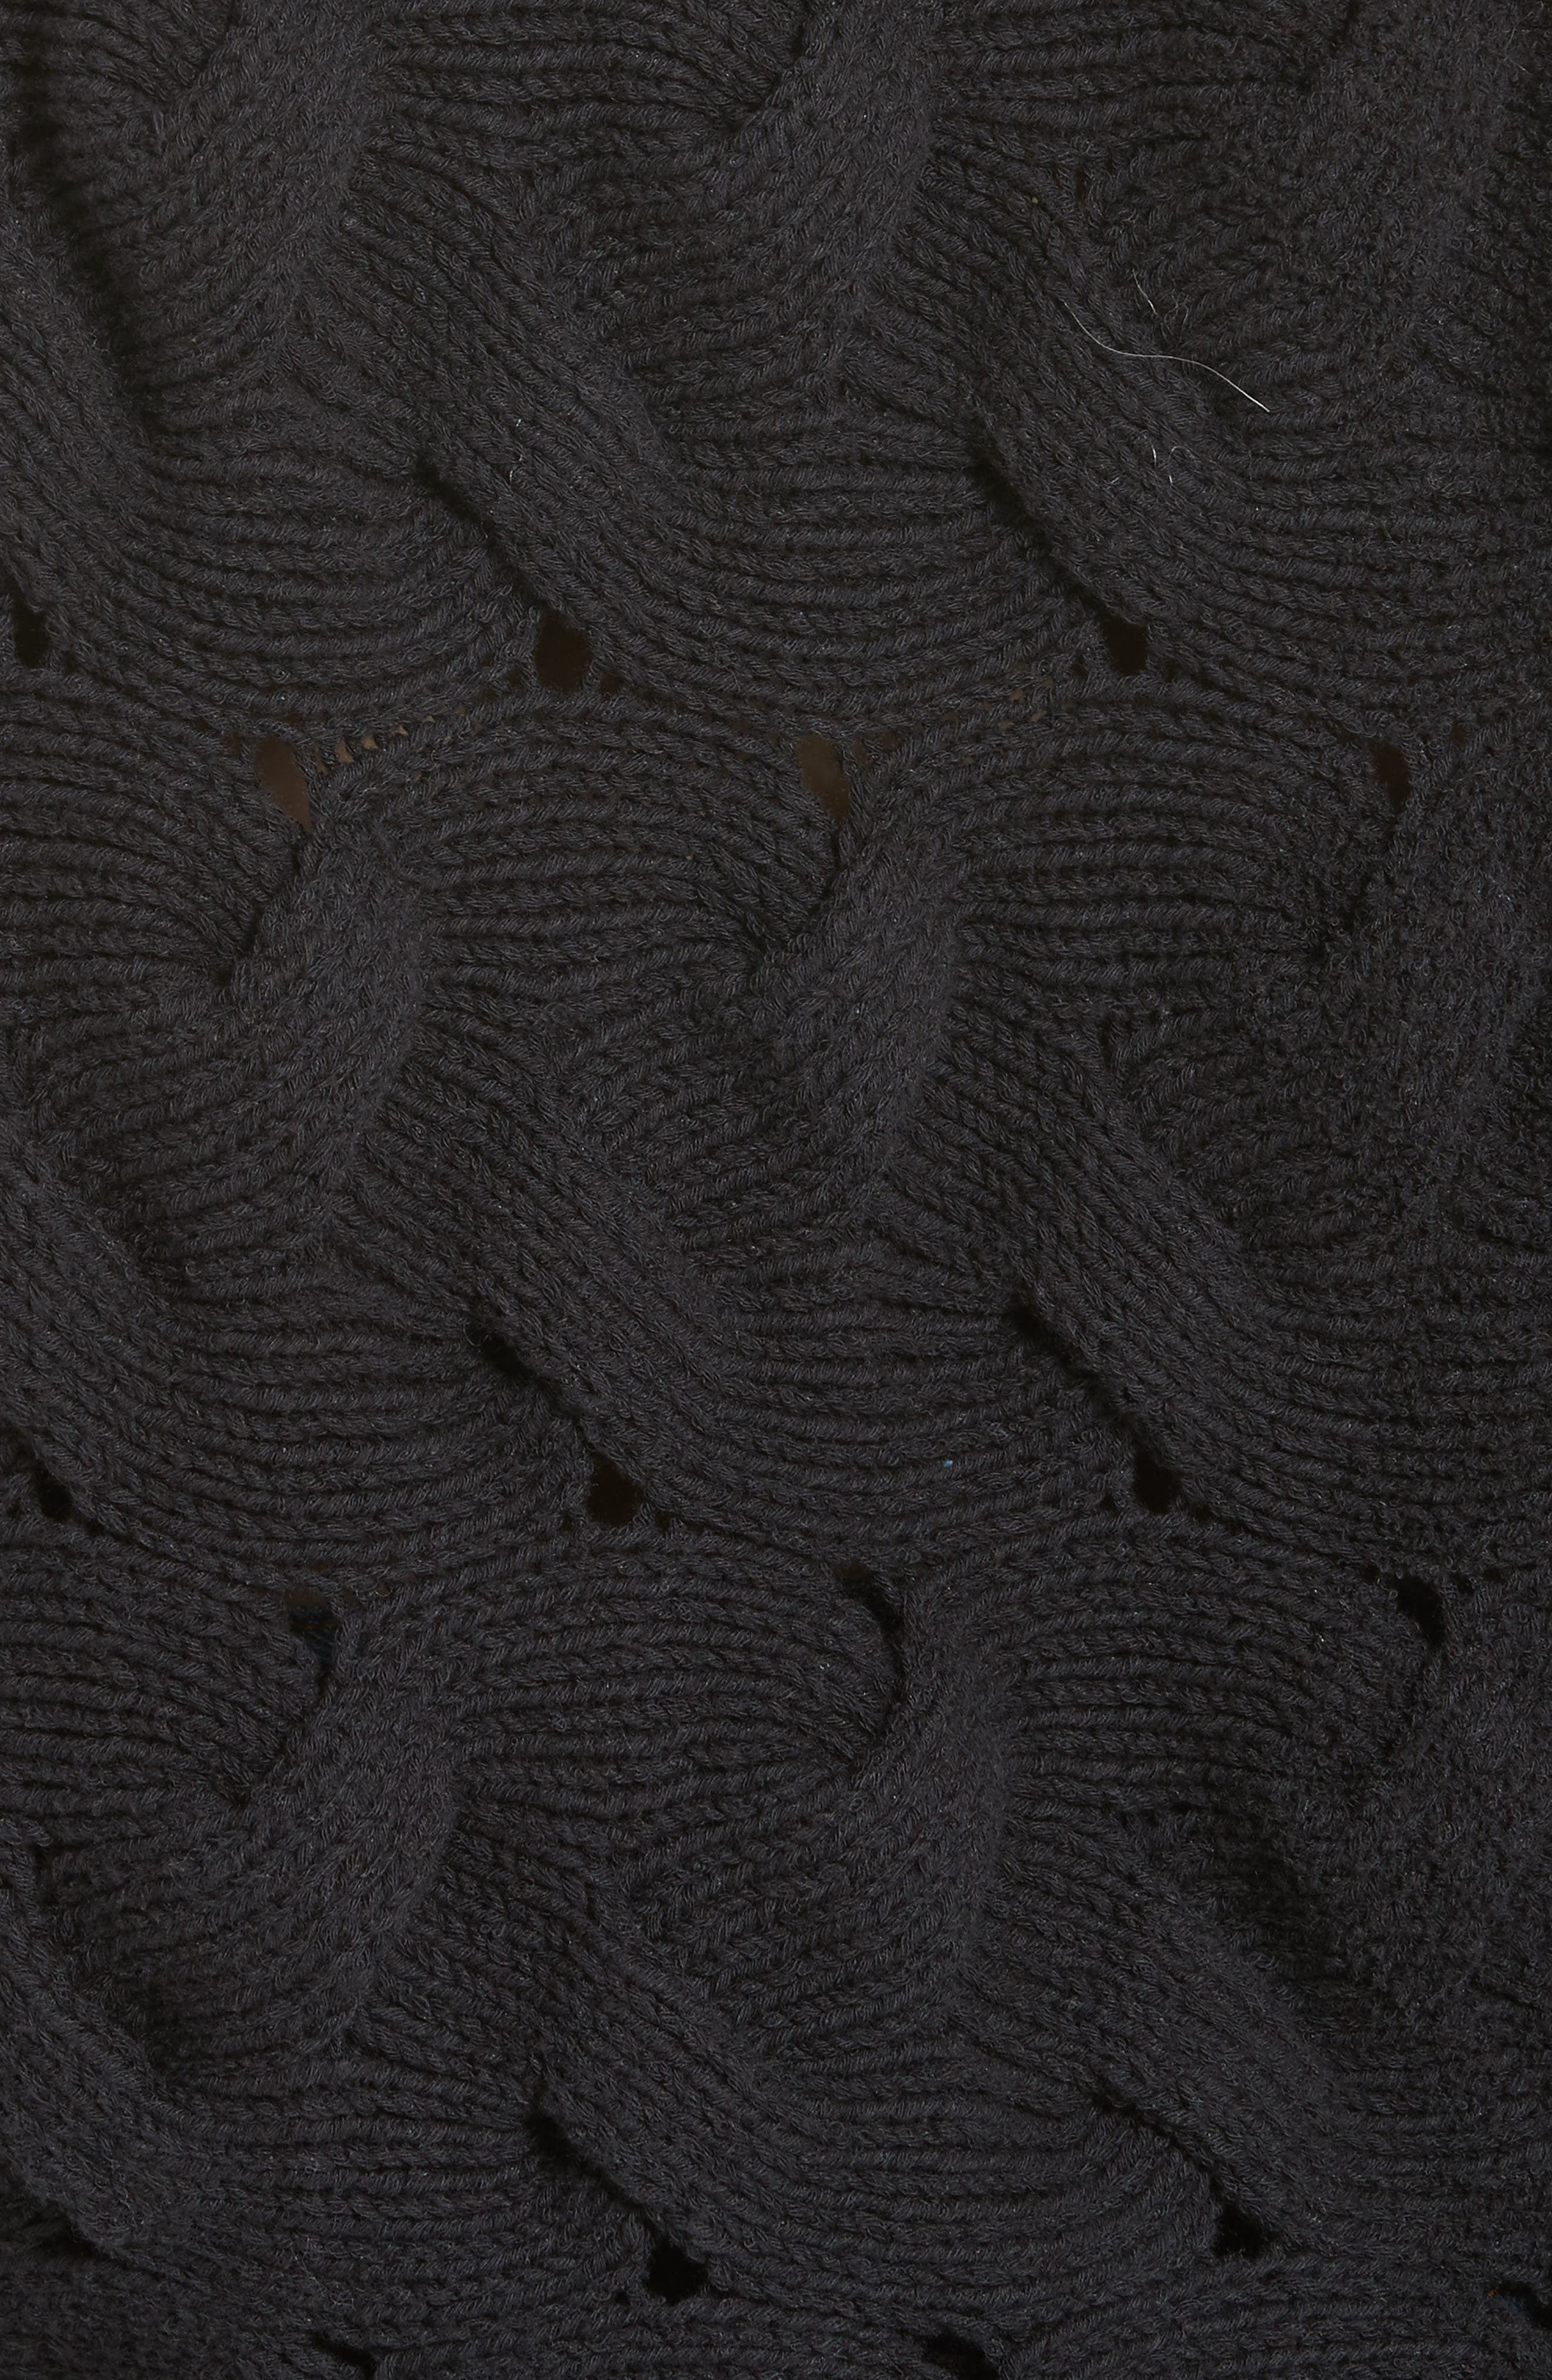 Desert Sands Cable Pullover,                             Alternate thumbnail 5, color,                             001